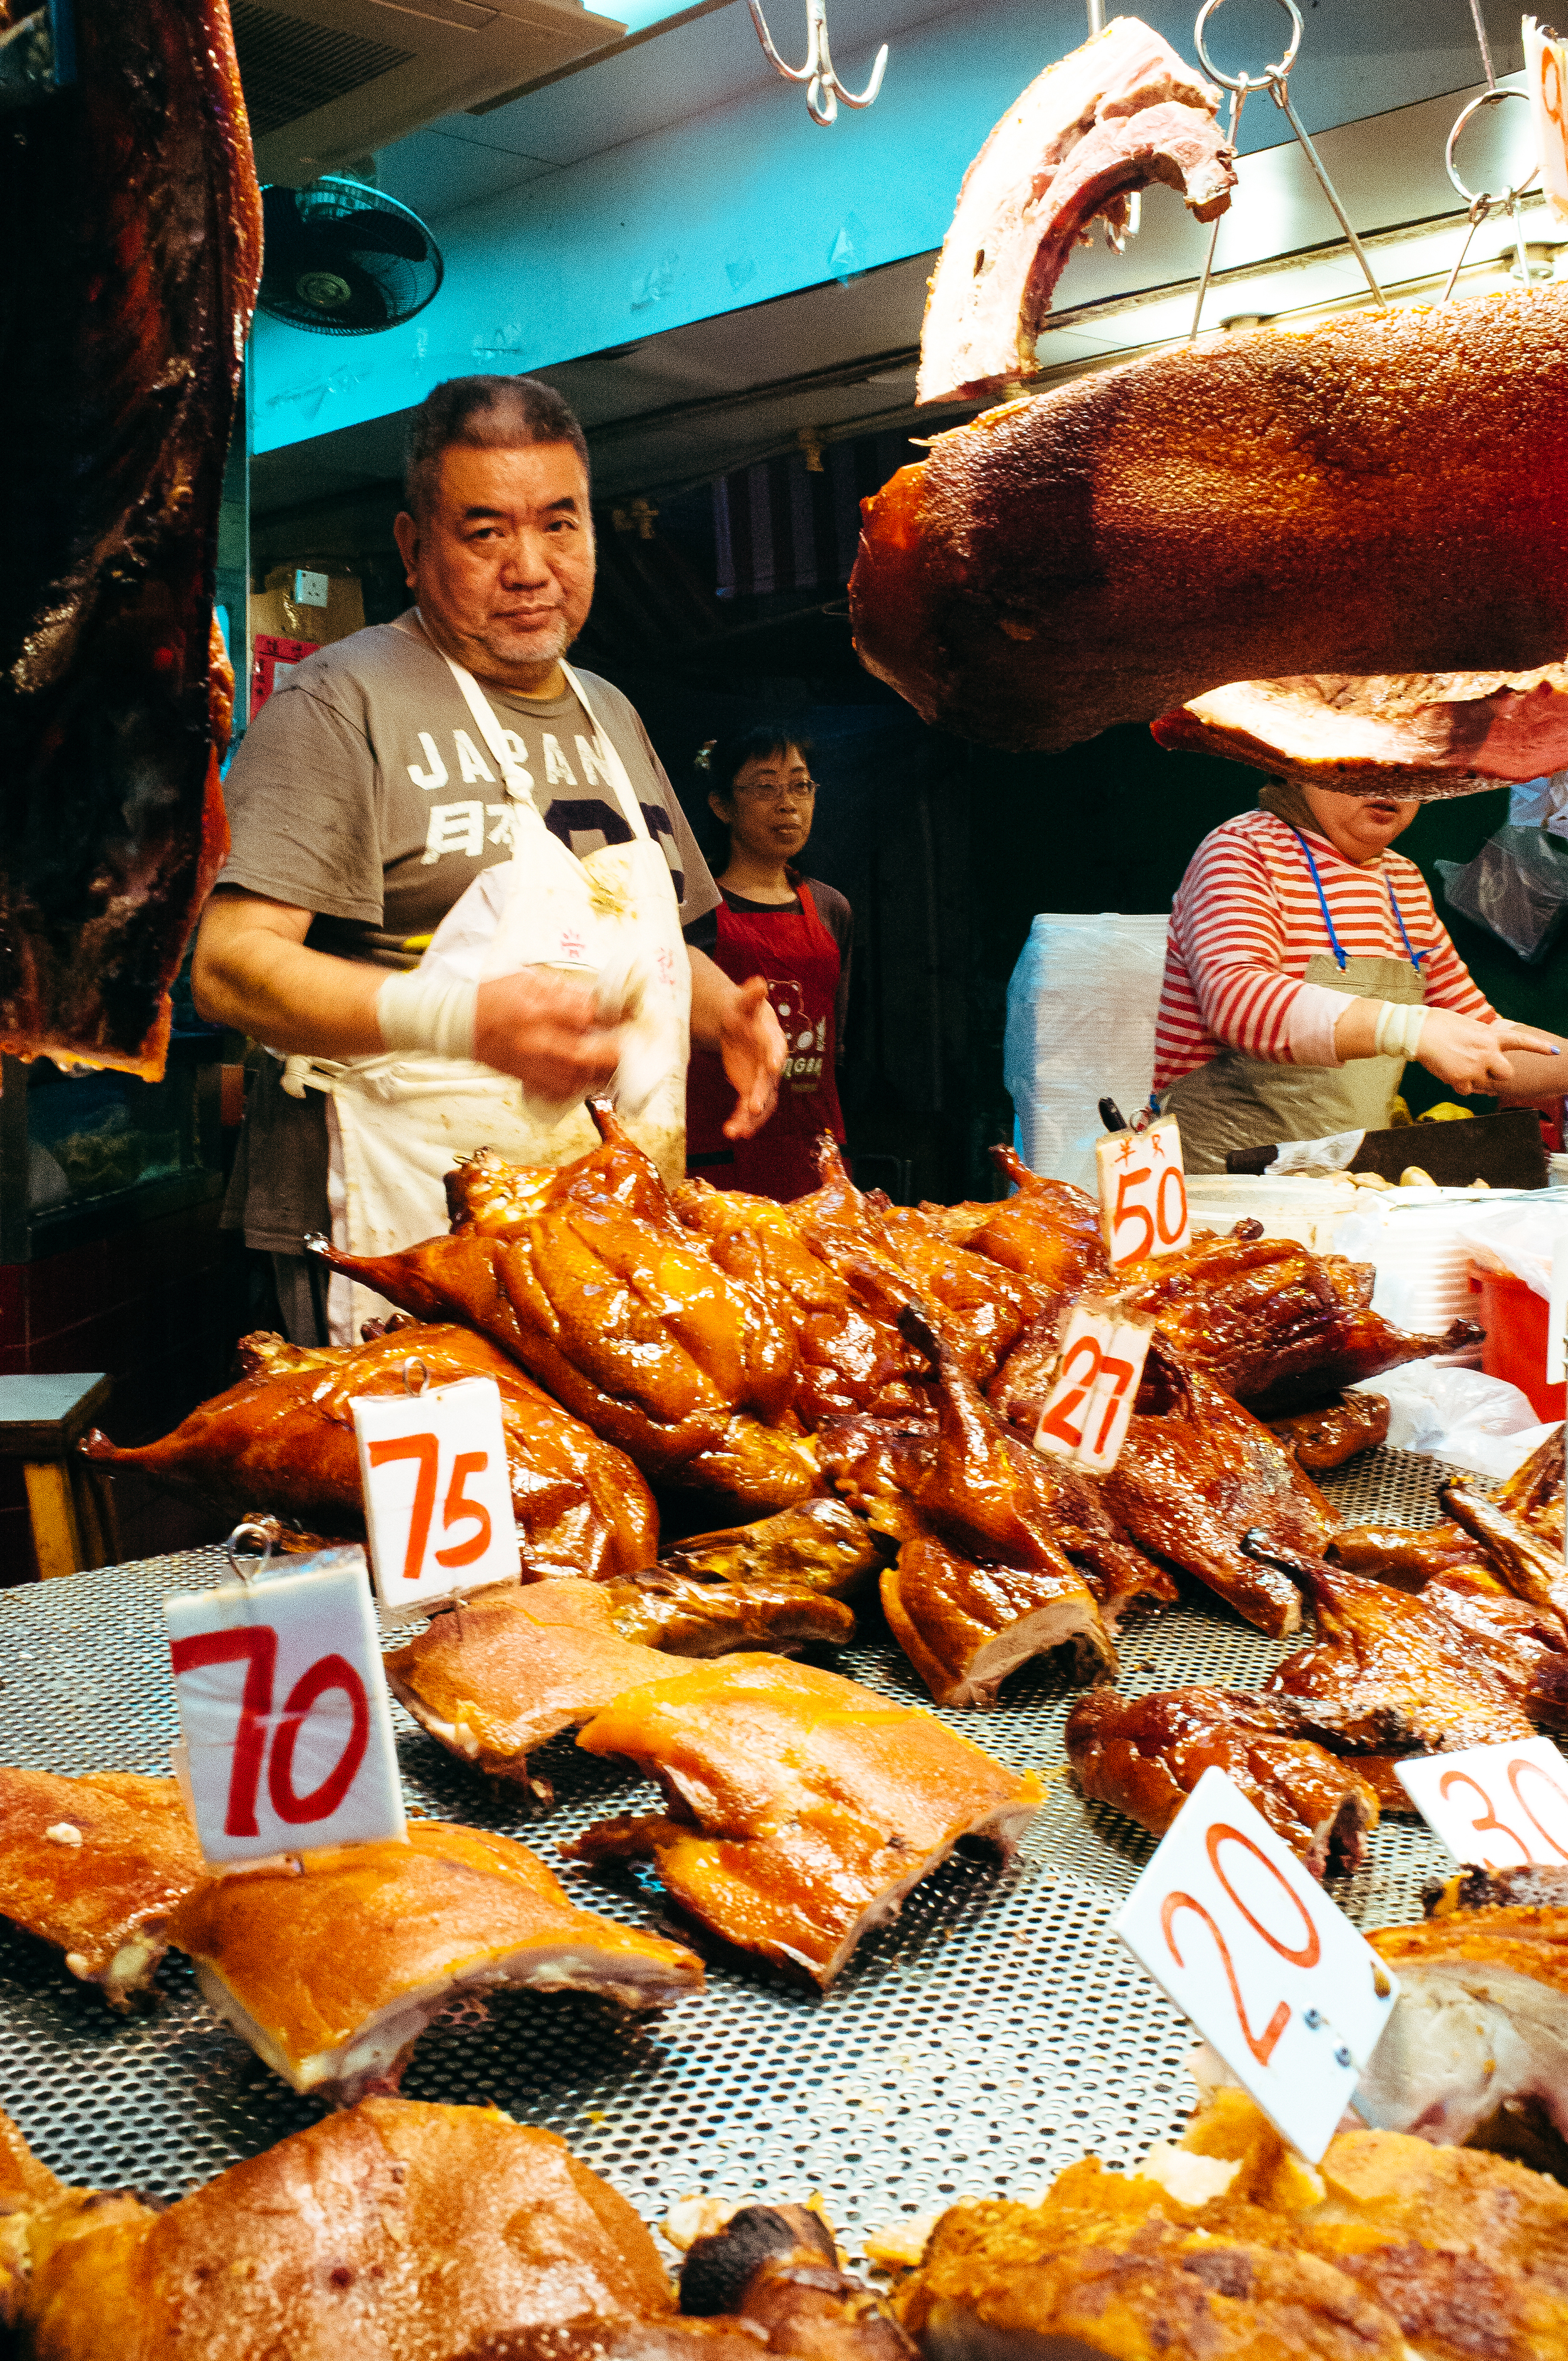 Just as many street butchers cook their meat as don't in HK.